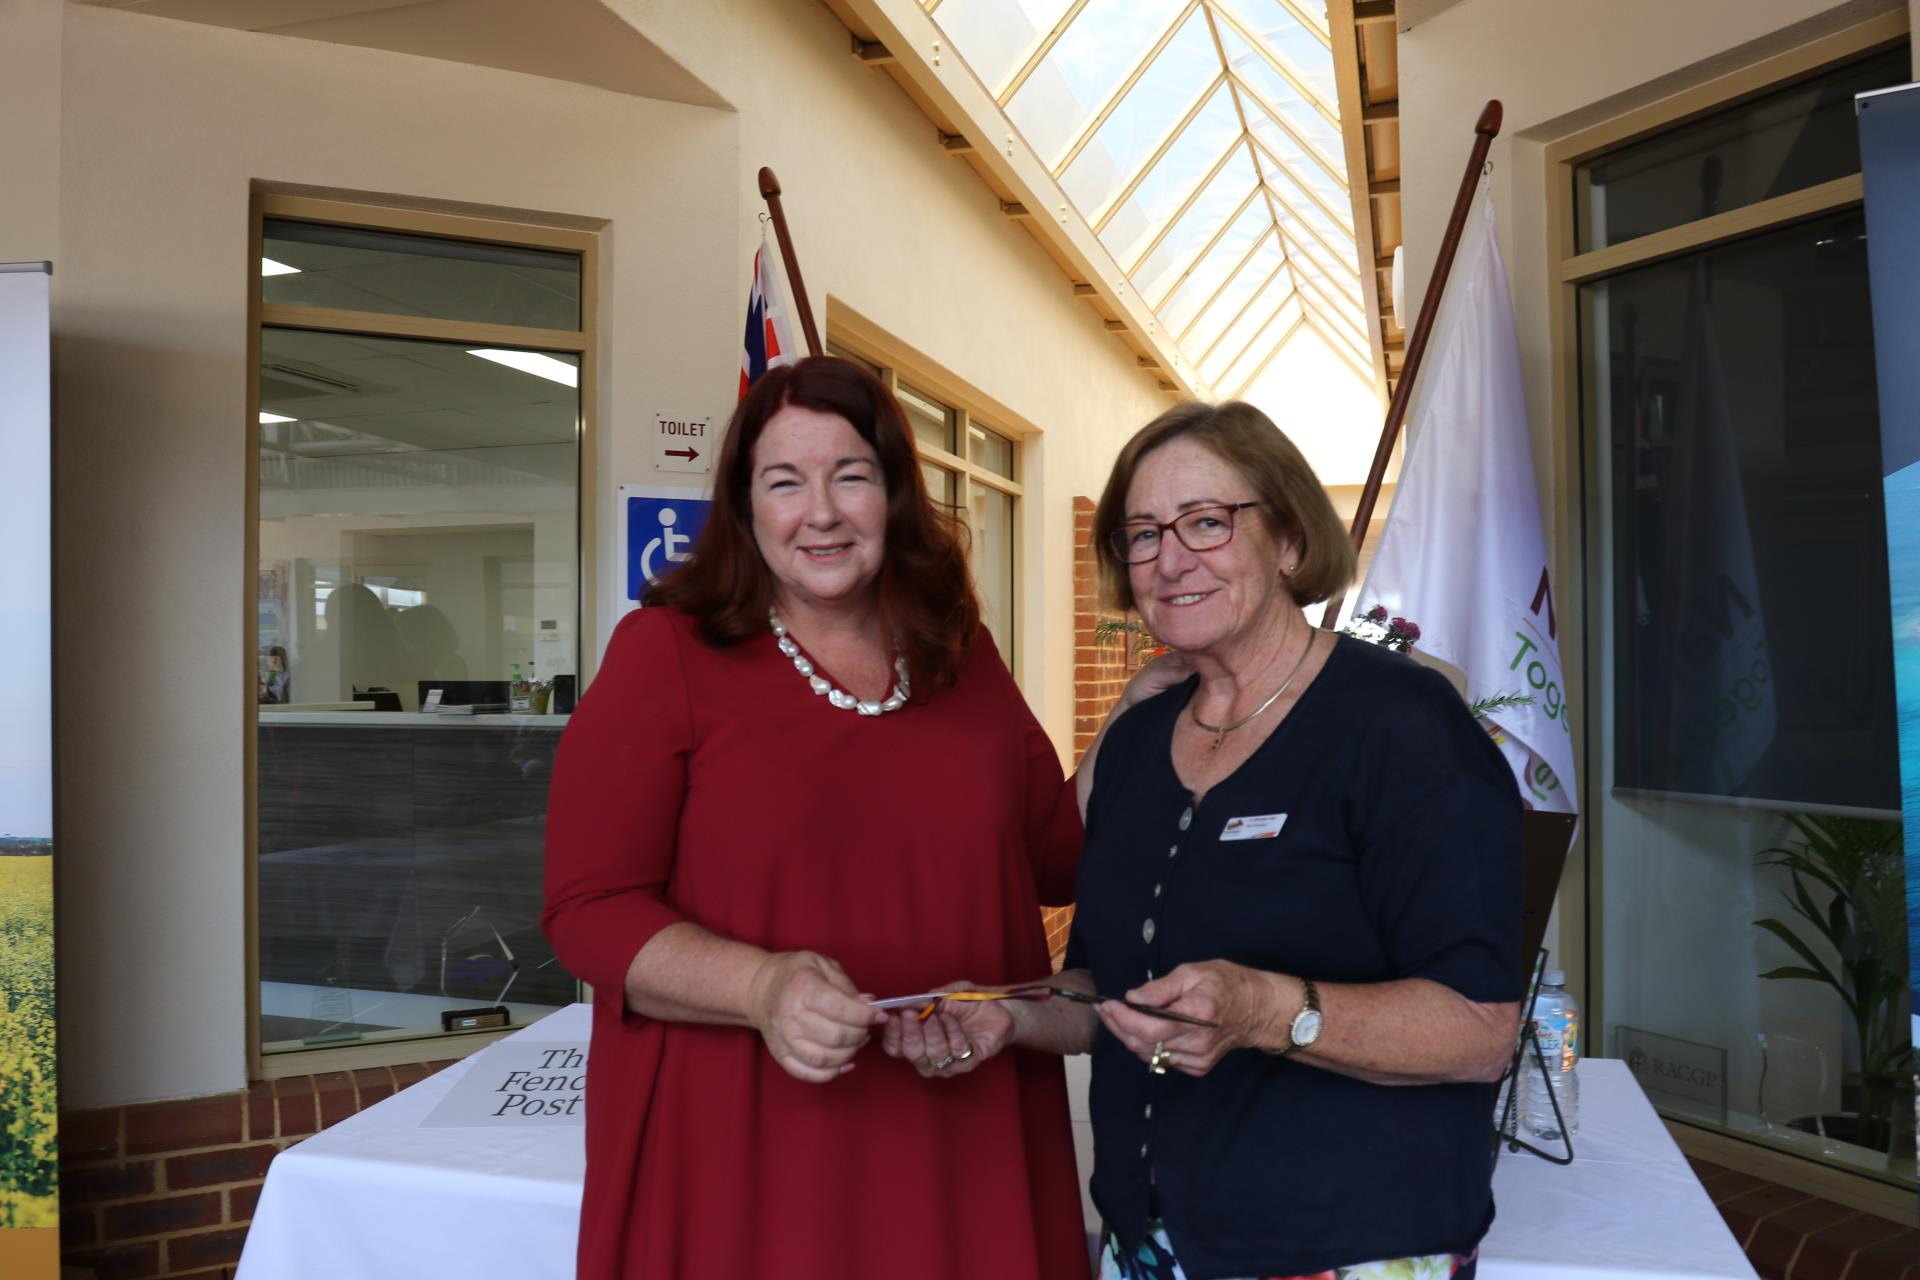 Narembeen Community Precinct Officially Opens